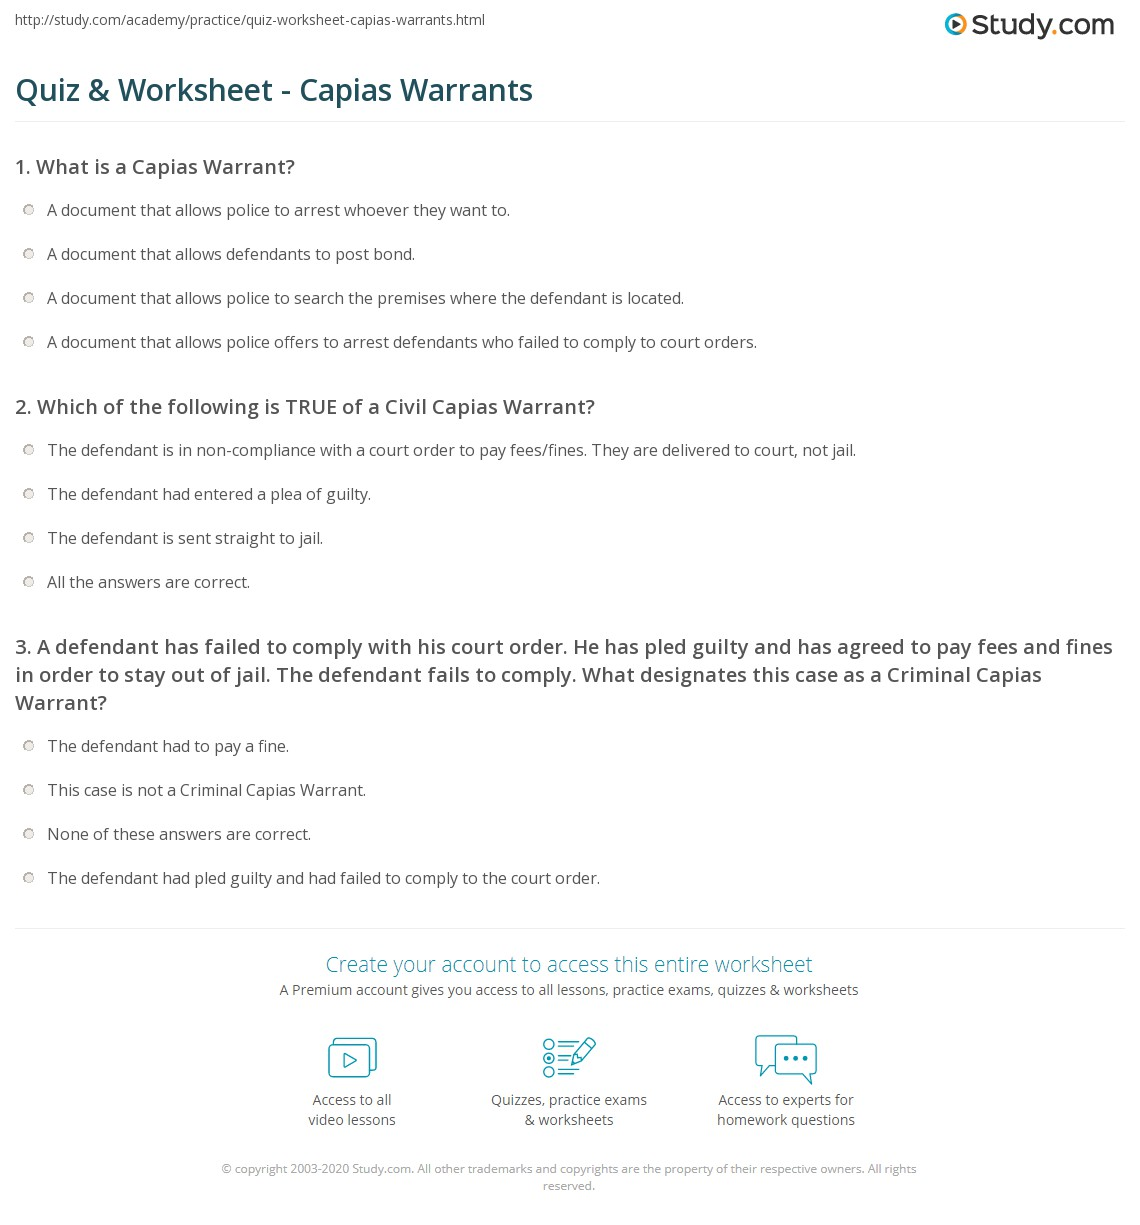 Quiz & Worksheet - Capias Warrants | Study com